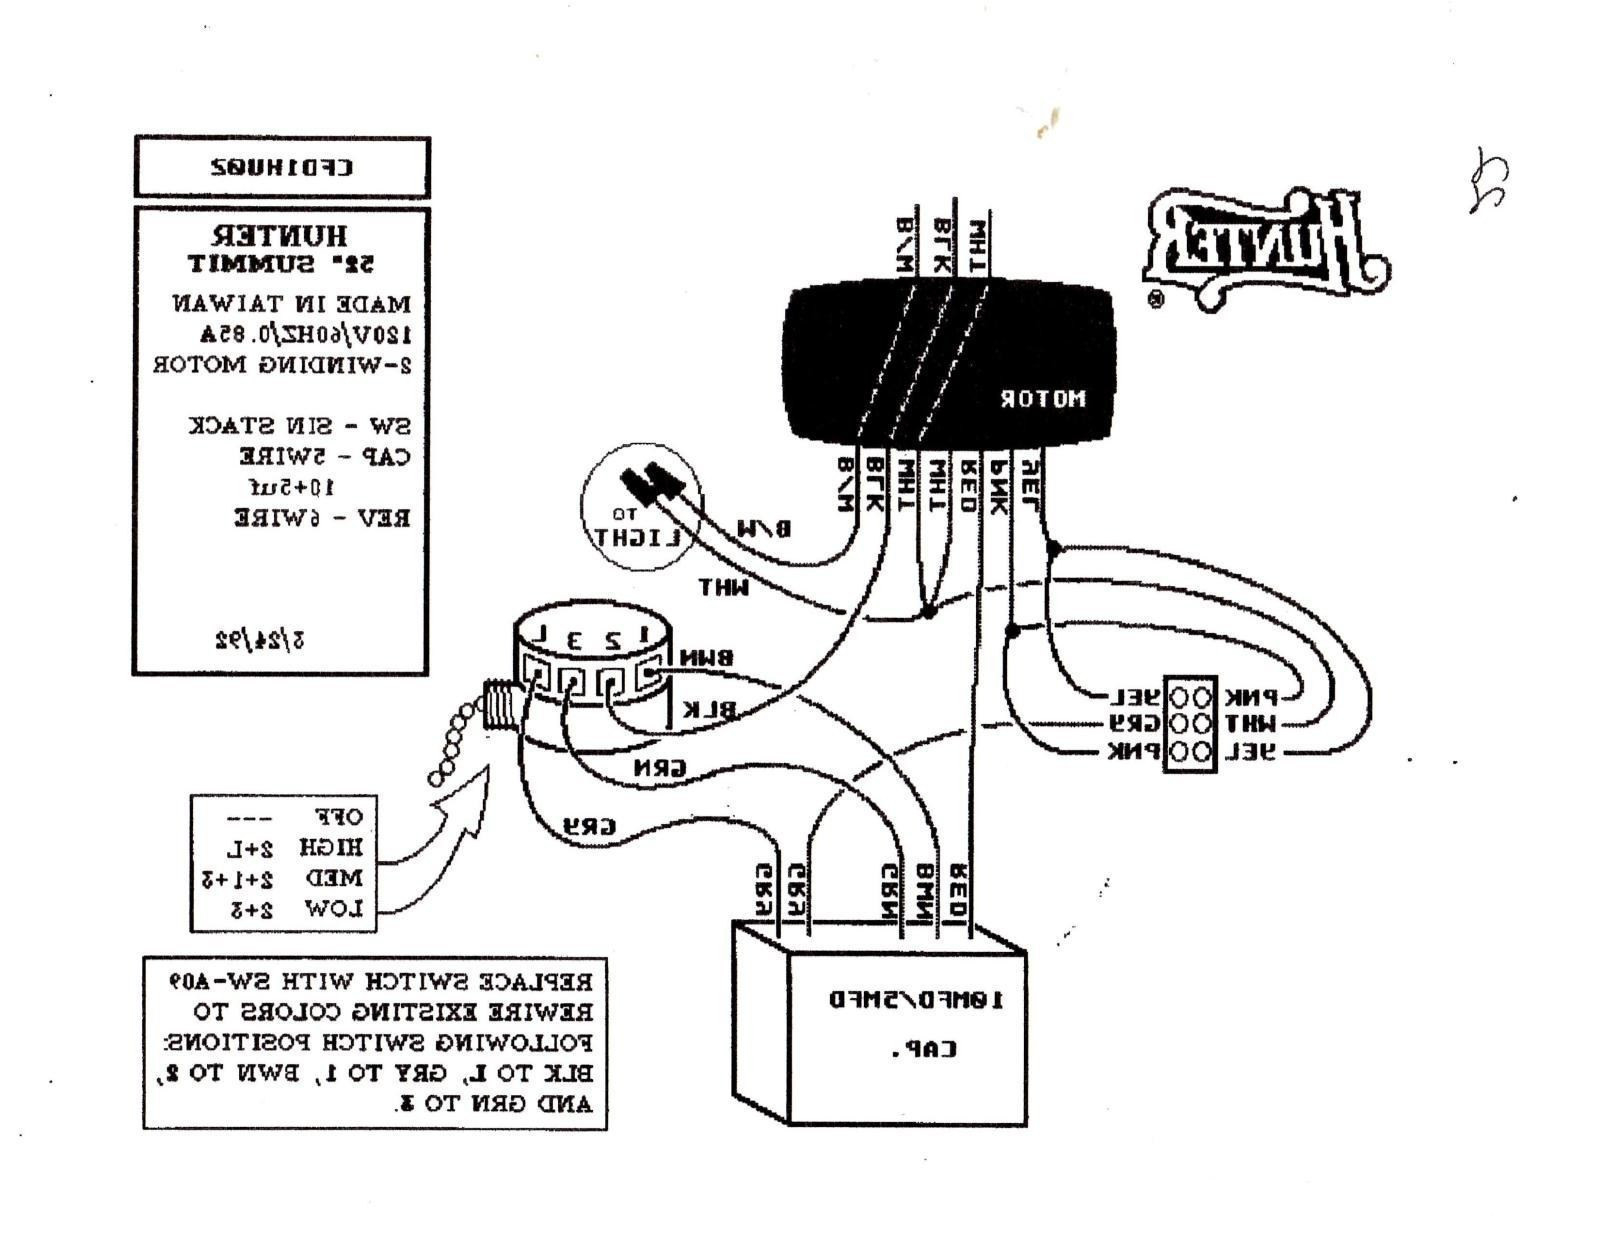 S Ptt Switch Wiring Diagram